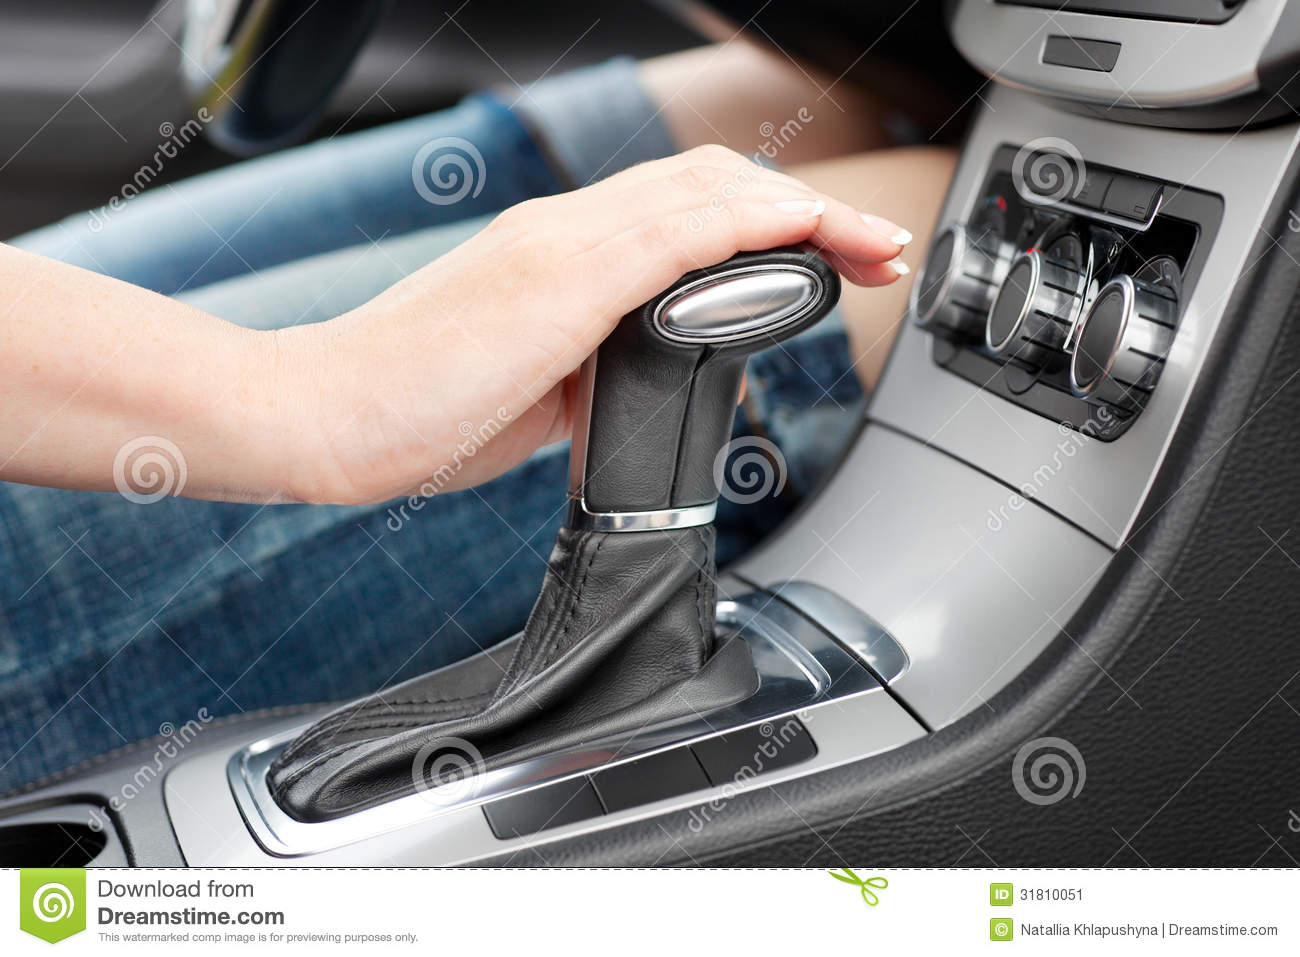 horny women riding gearshift in car